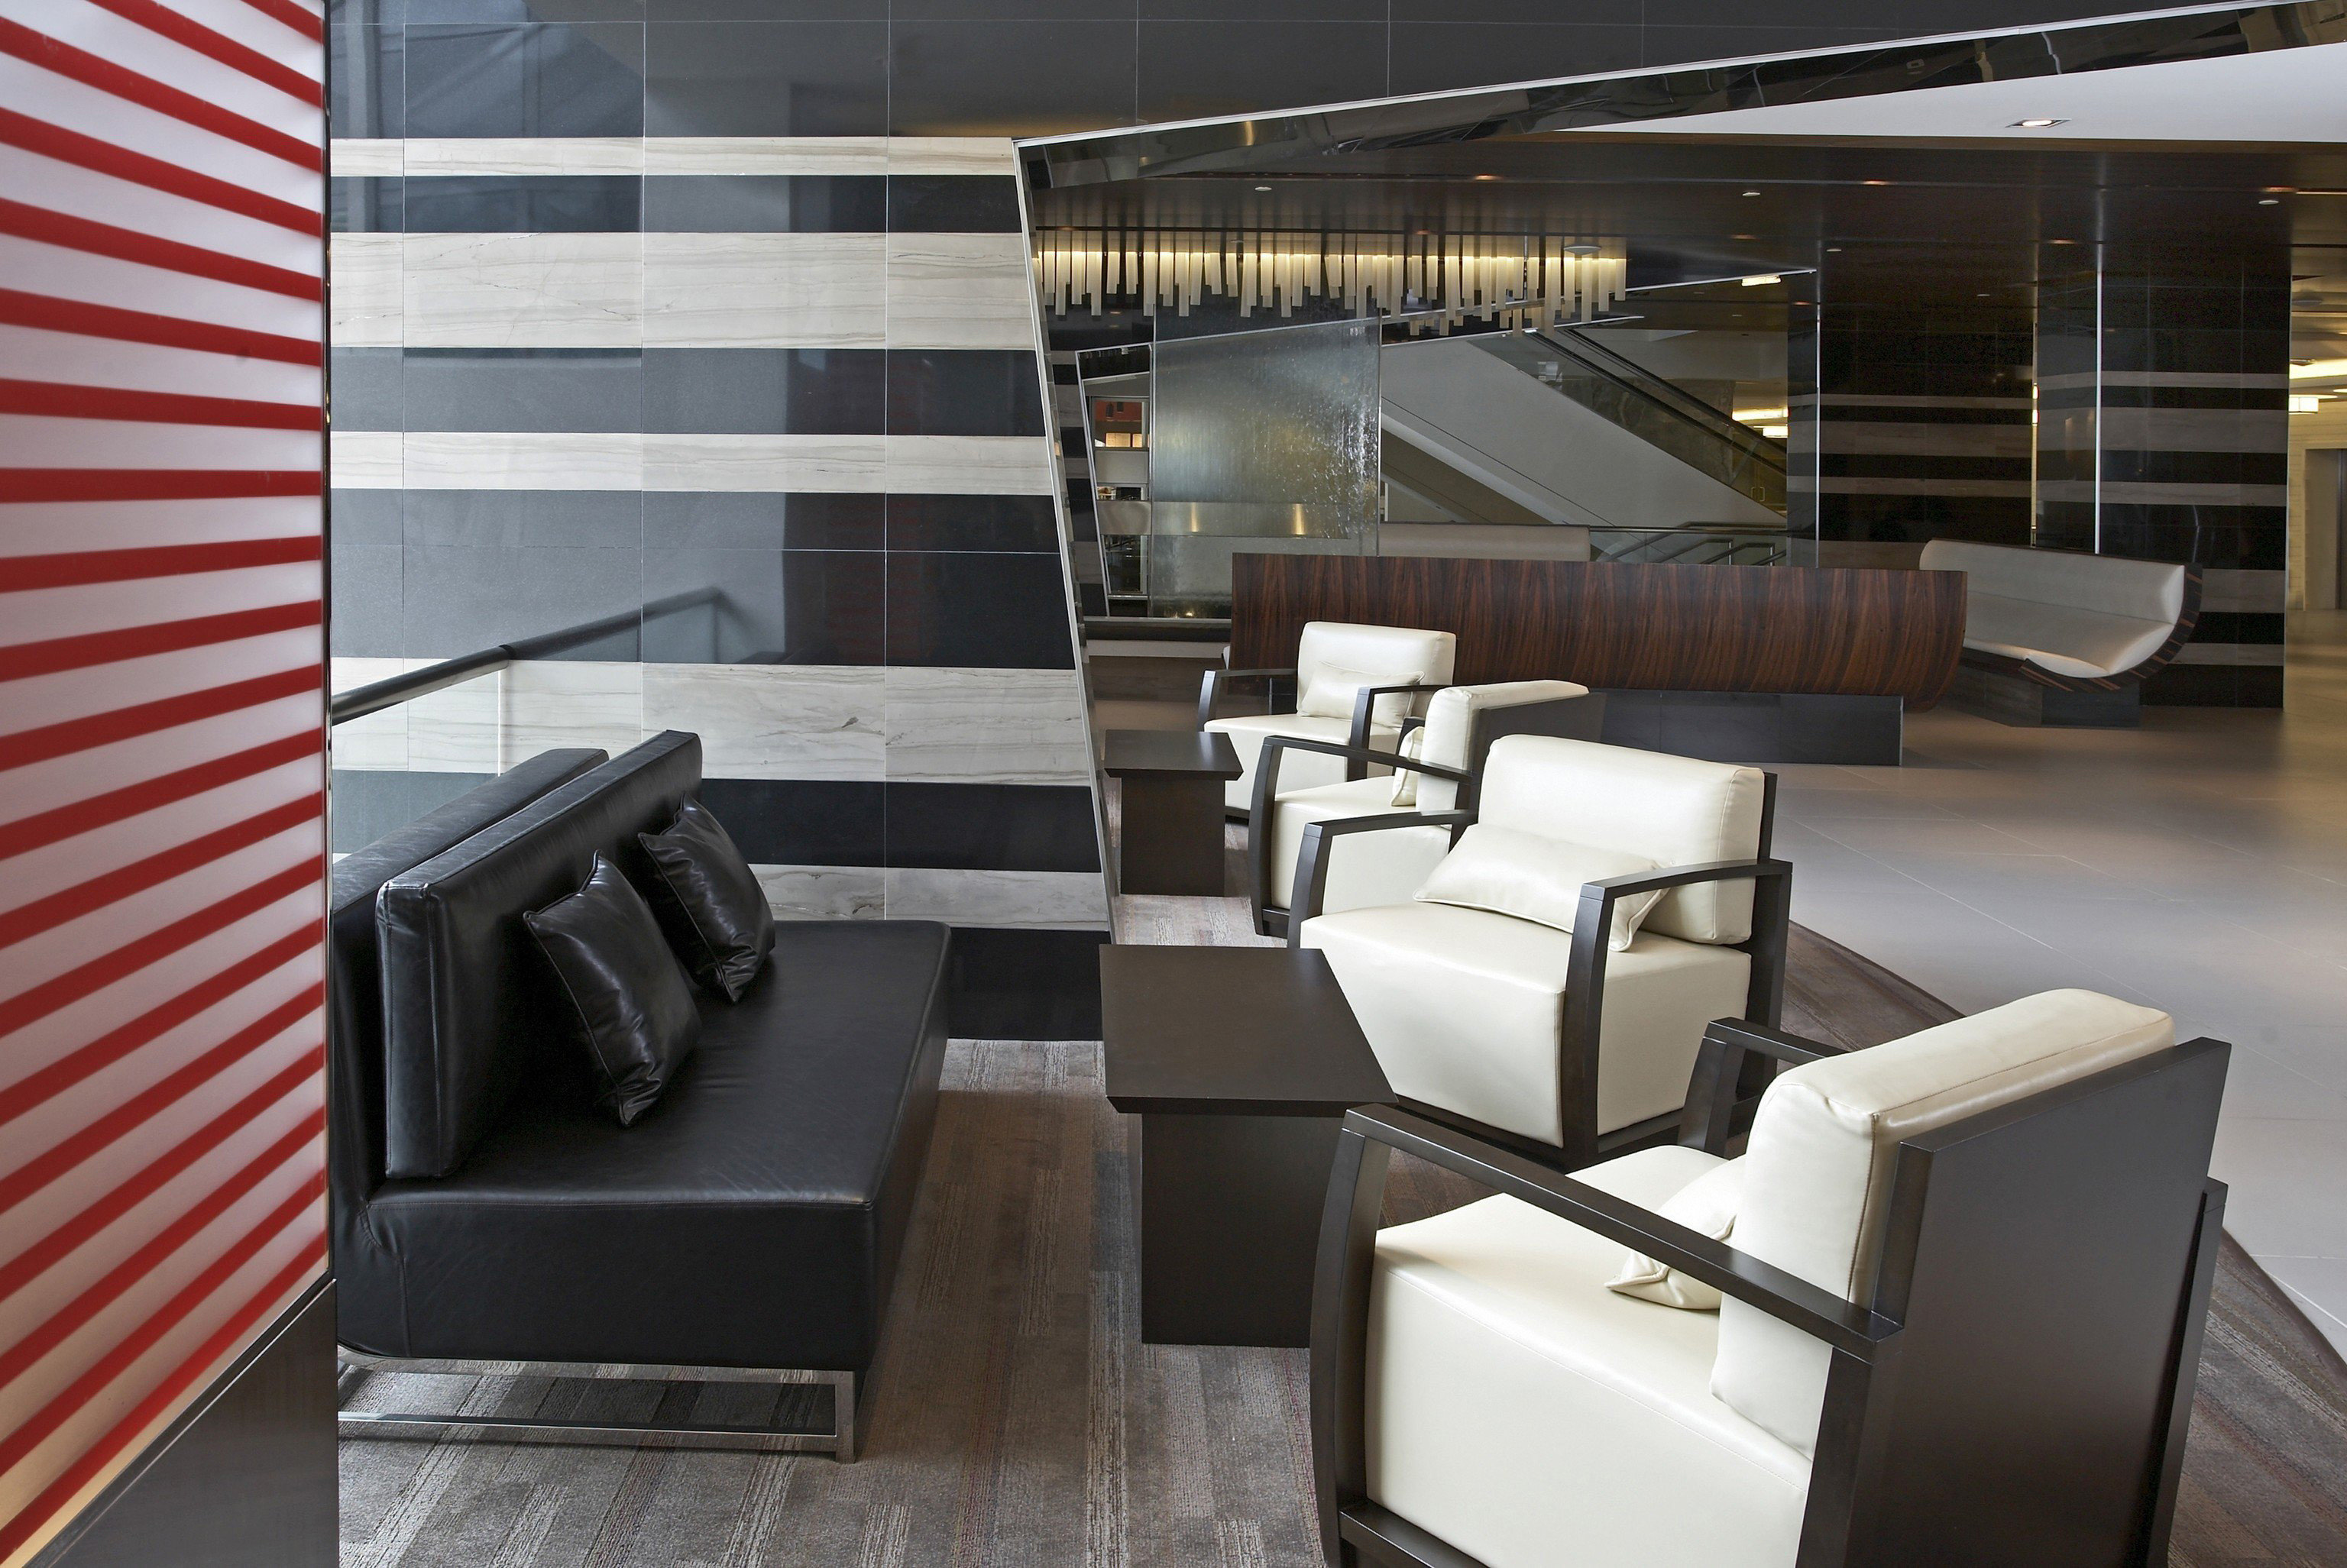 Architecture office Lobby headquarters condominium yacht vehicle living room loft